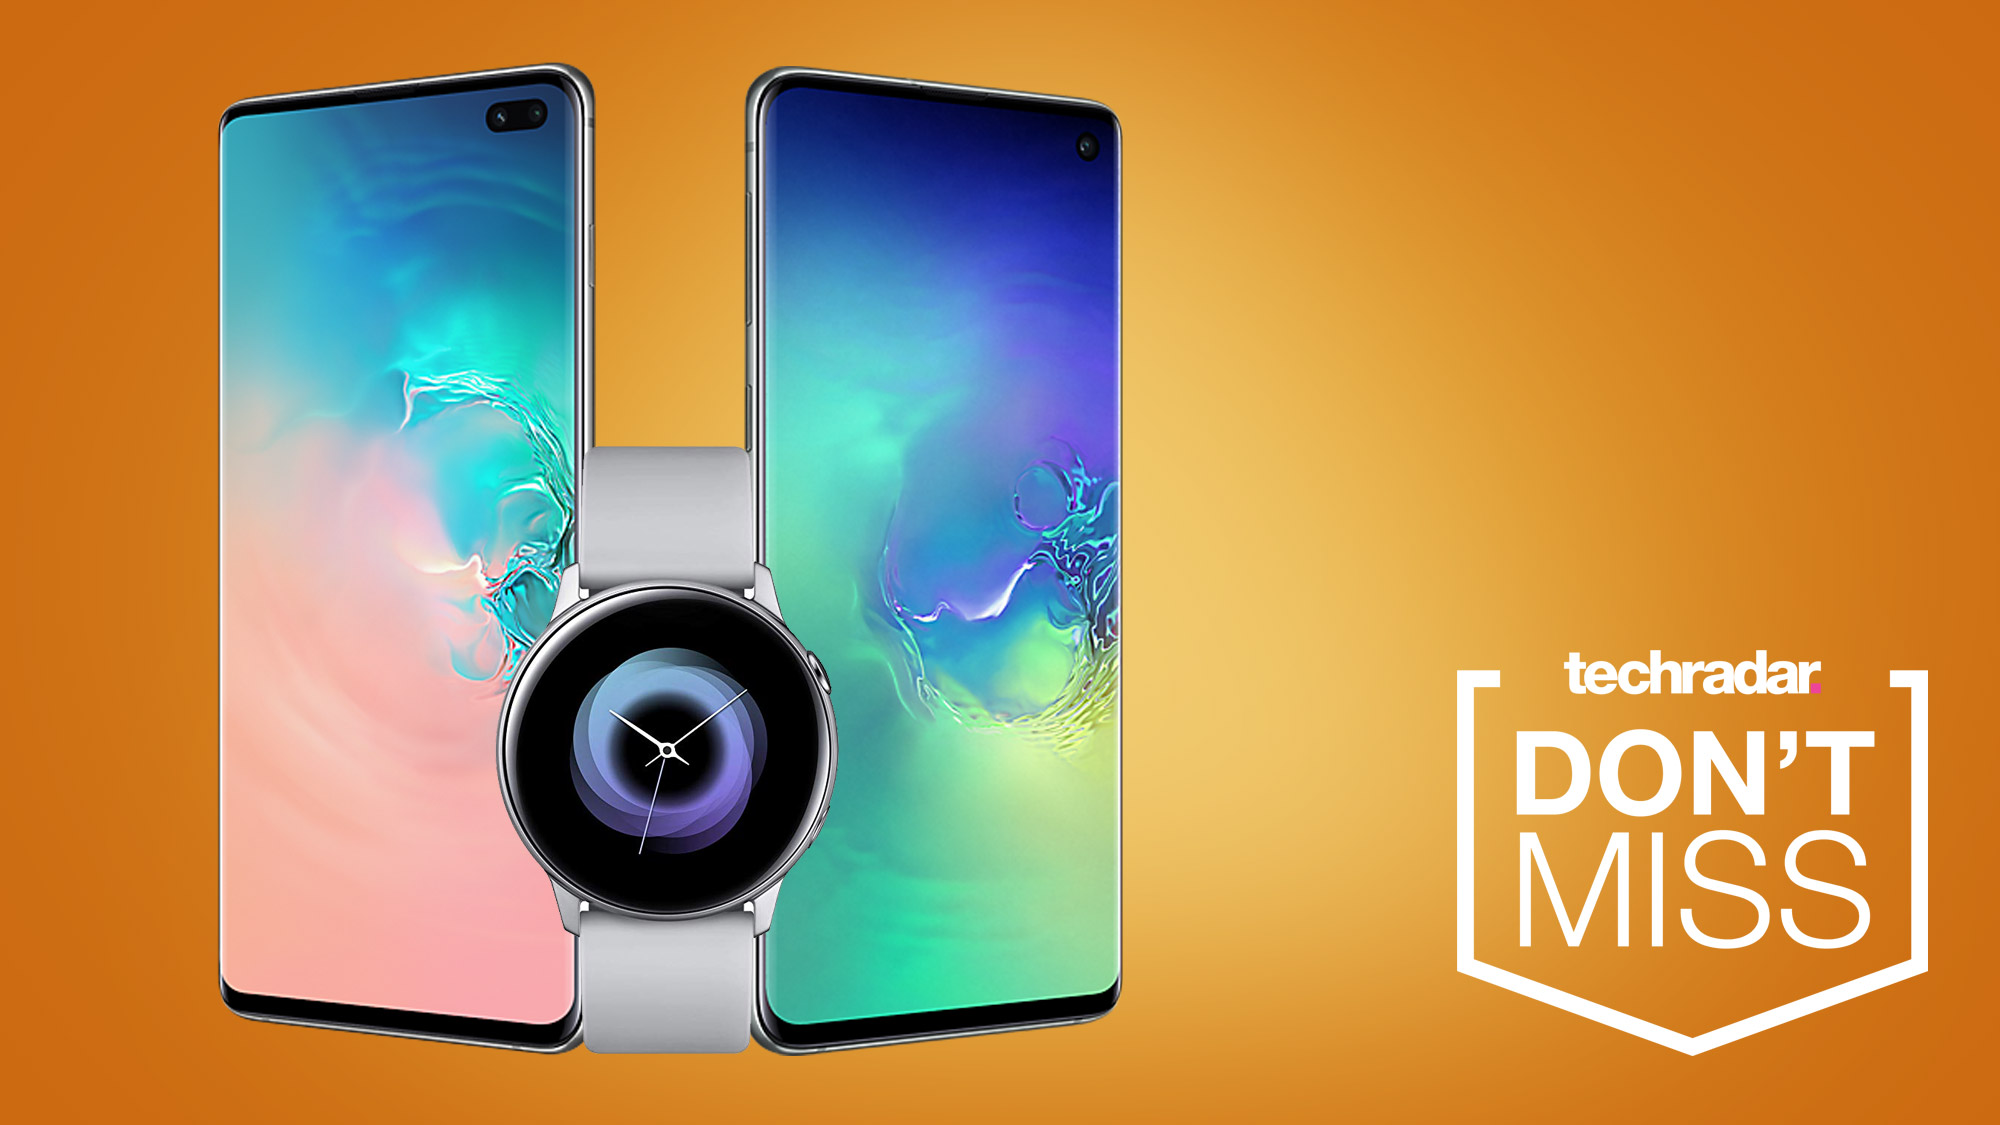 Samsung S10 and S10 Plus deals come with a free smartwatch...but not for long